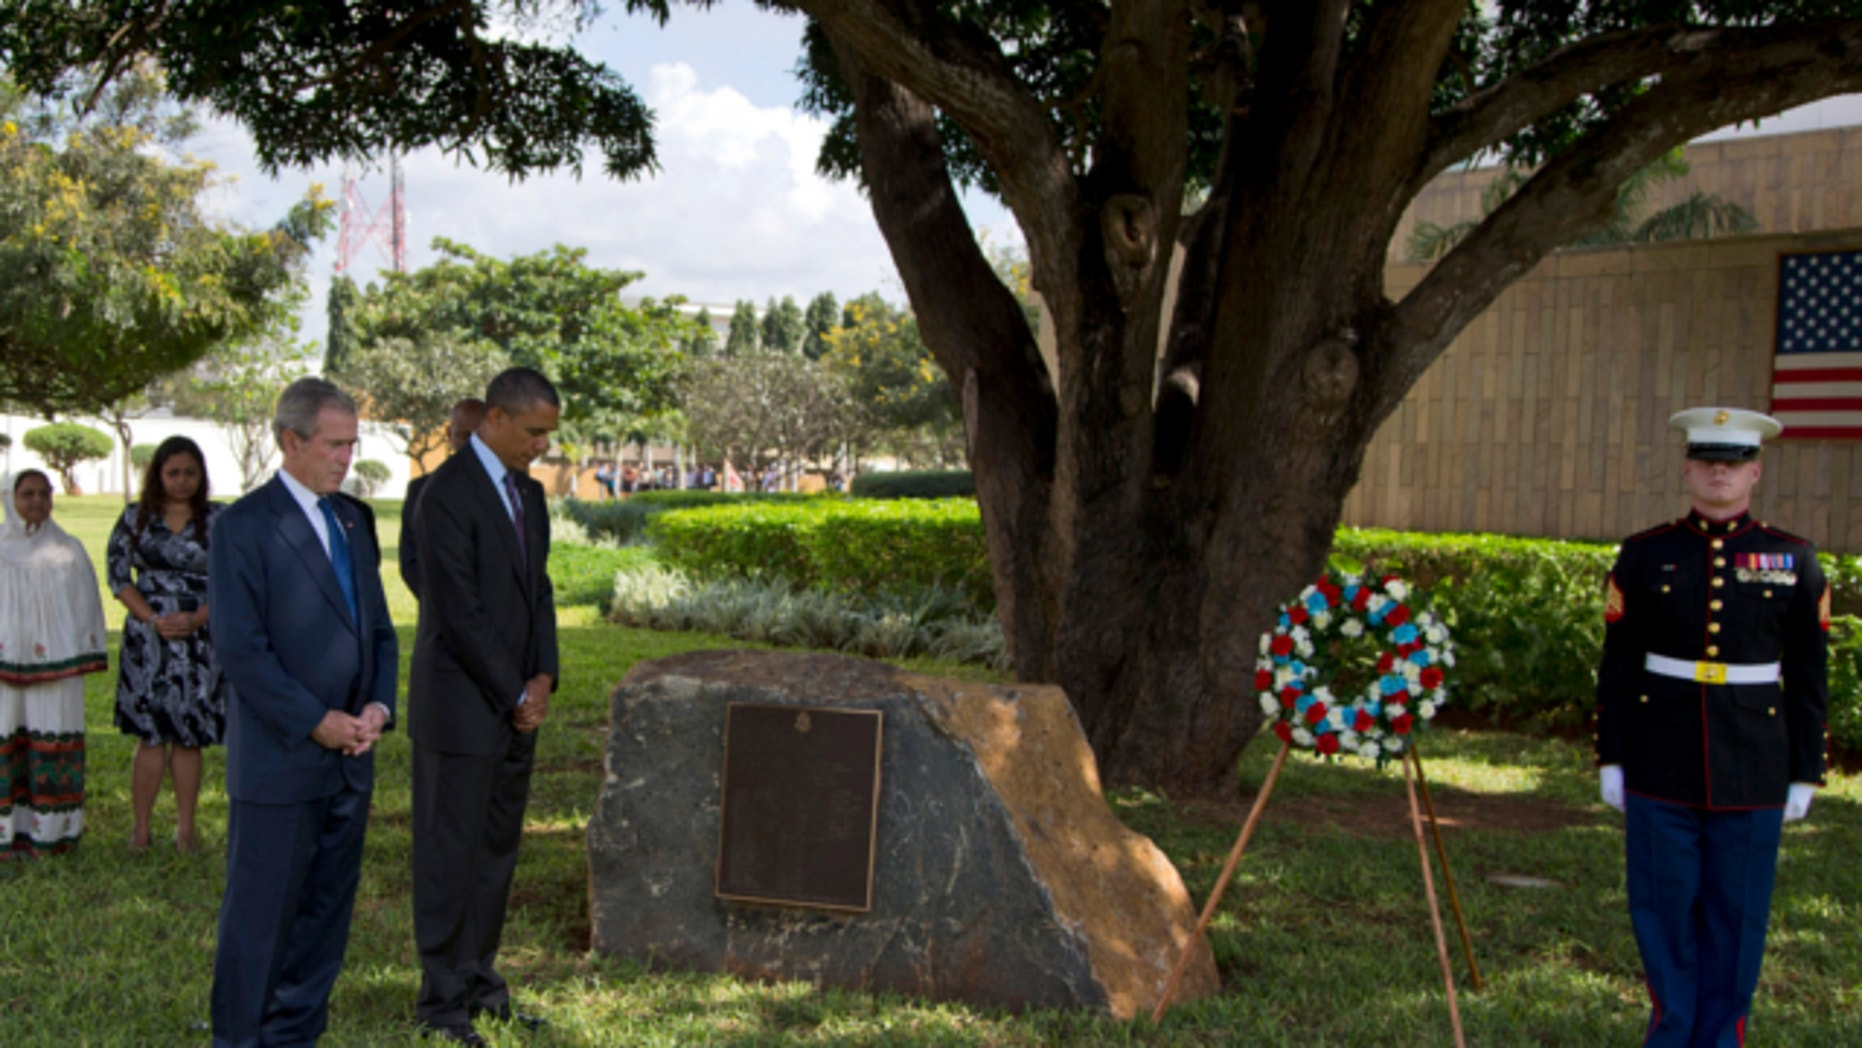 July 2, 2013: President Barack Obama and former U.S. President George W. Bush pause for a moment of silence during a wreath laying ceremony to honor the victims of the U.S. Embassy bombing in Dar Es Salaam, Tanzania.